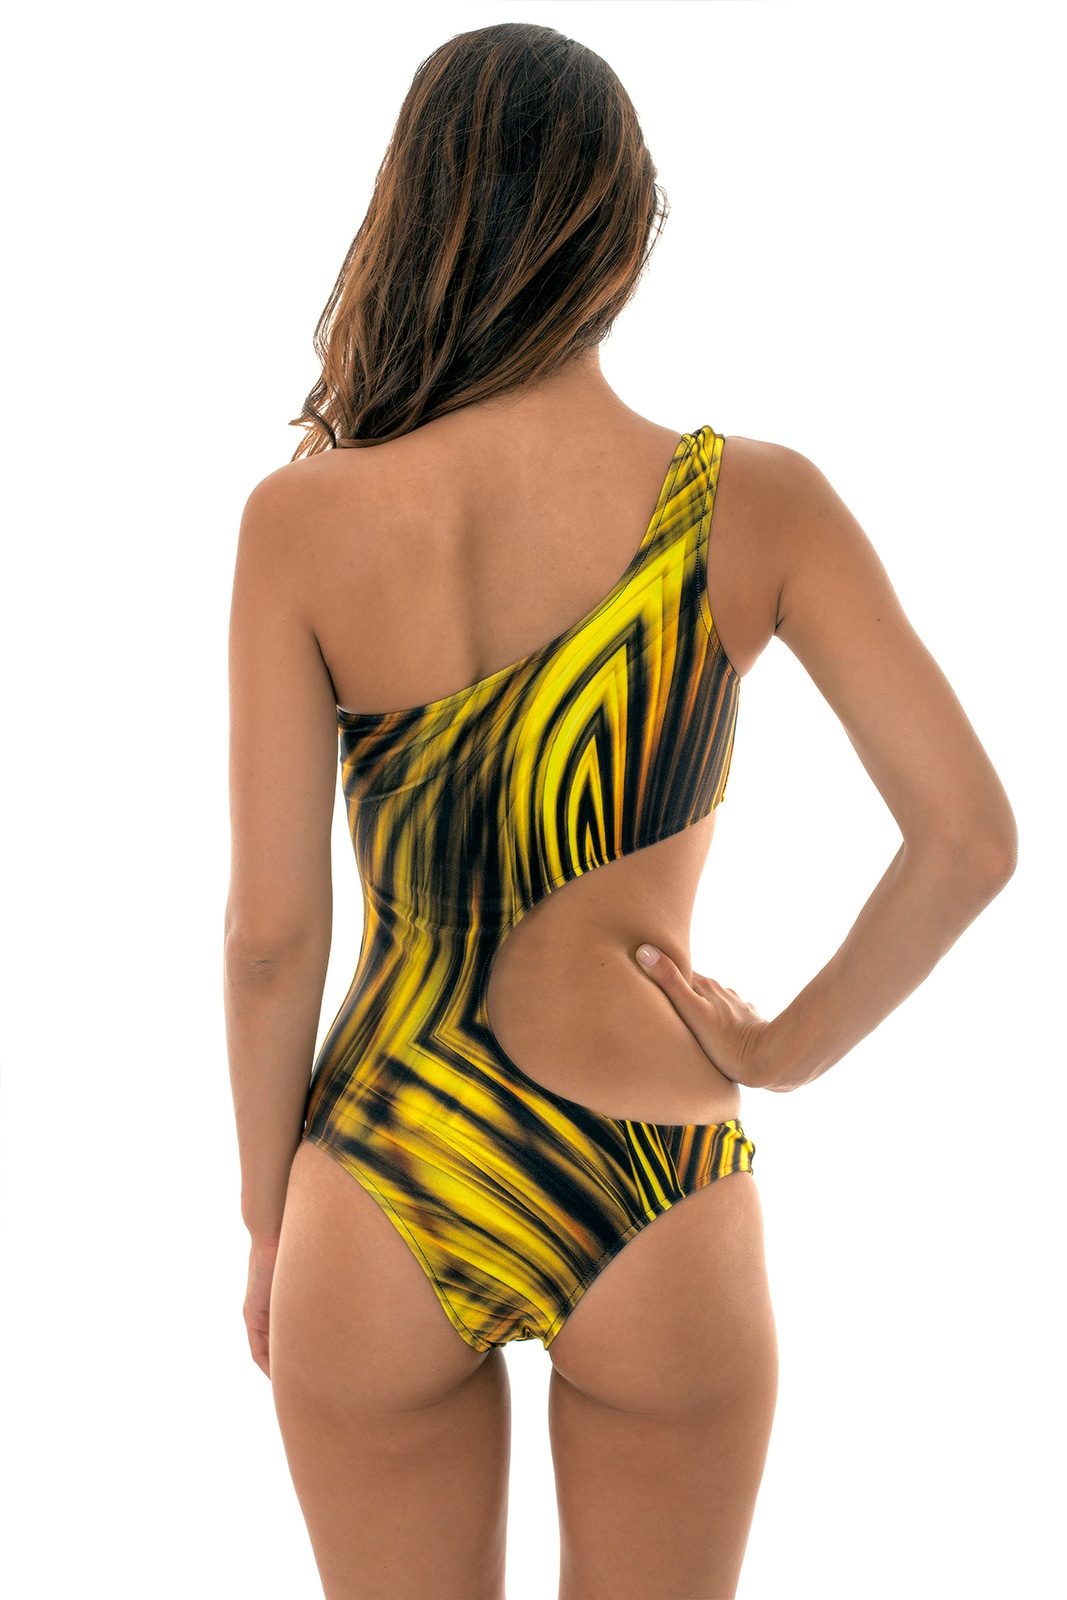 a77c58fcebf86 ... One piece asymmetrical swimsuit with a golden yellow print - LUXOR  ASSIMETRICO ...